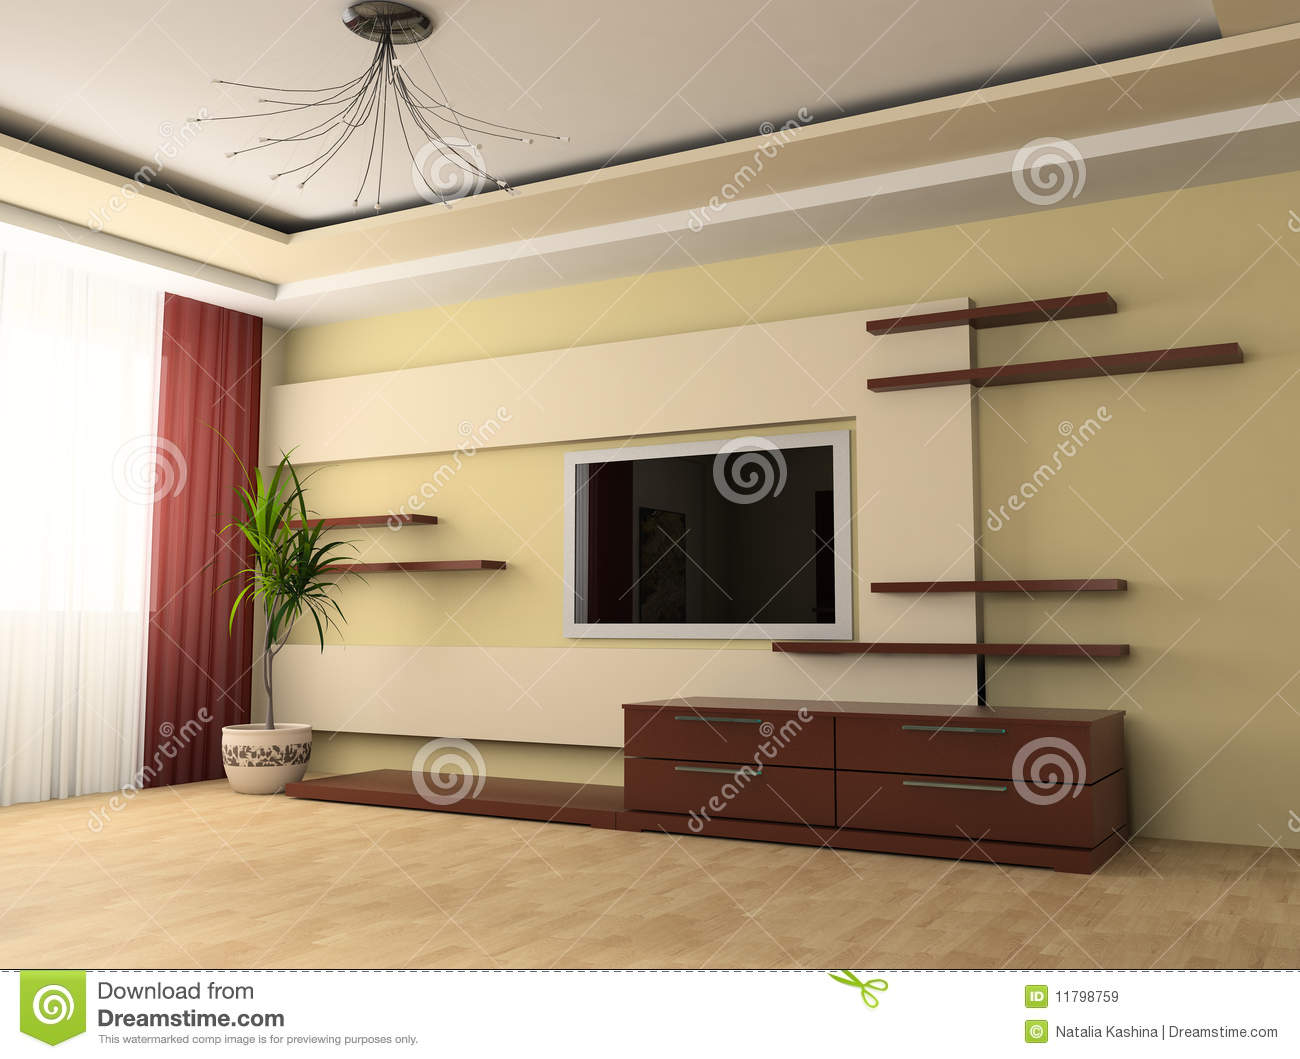 Drawing room stock image. Image of appliance, design - 11798759